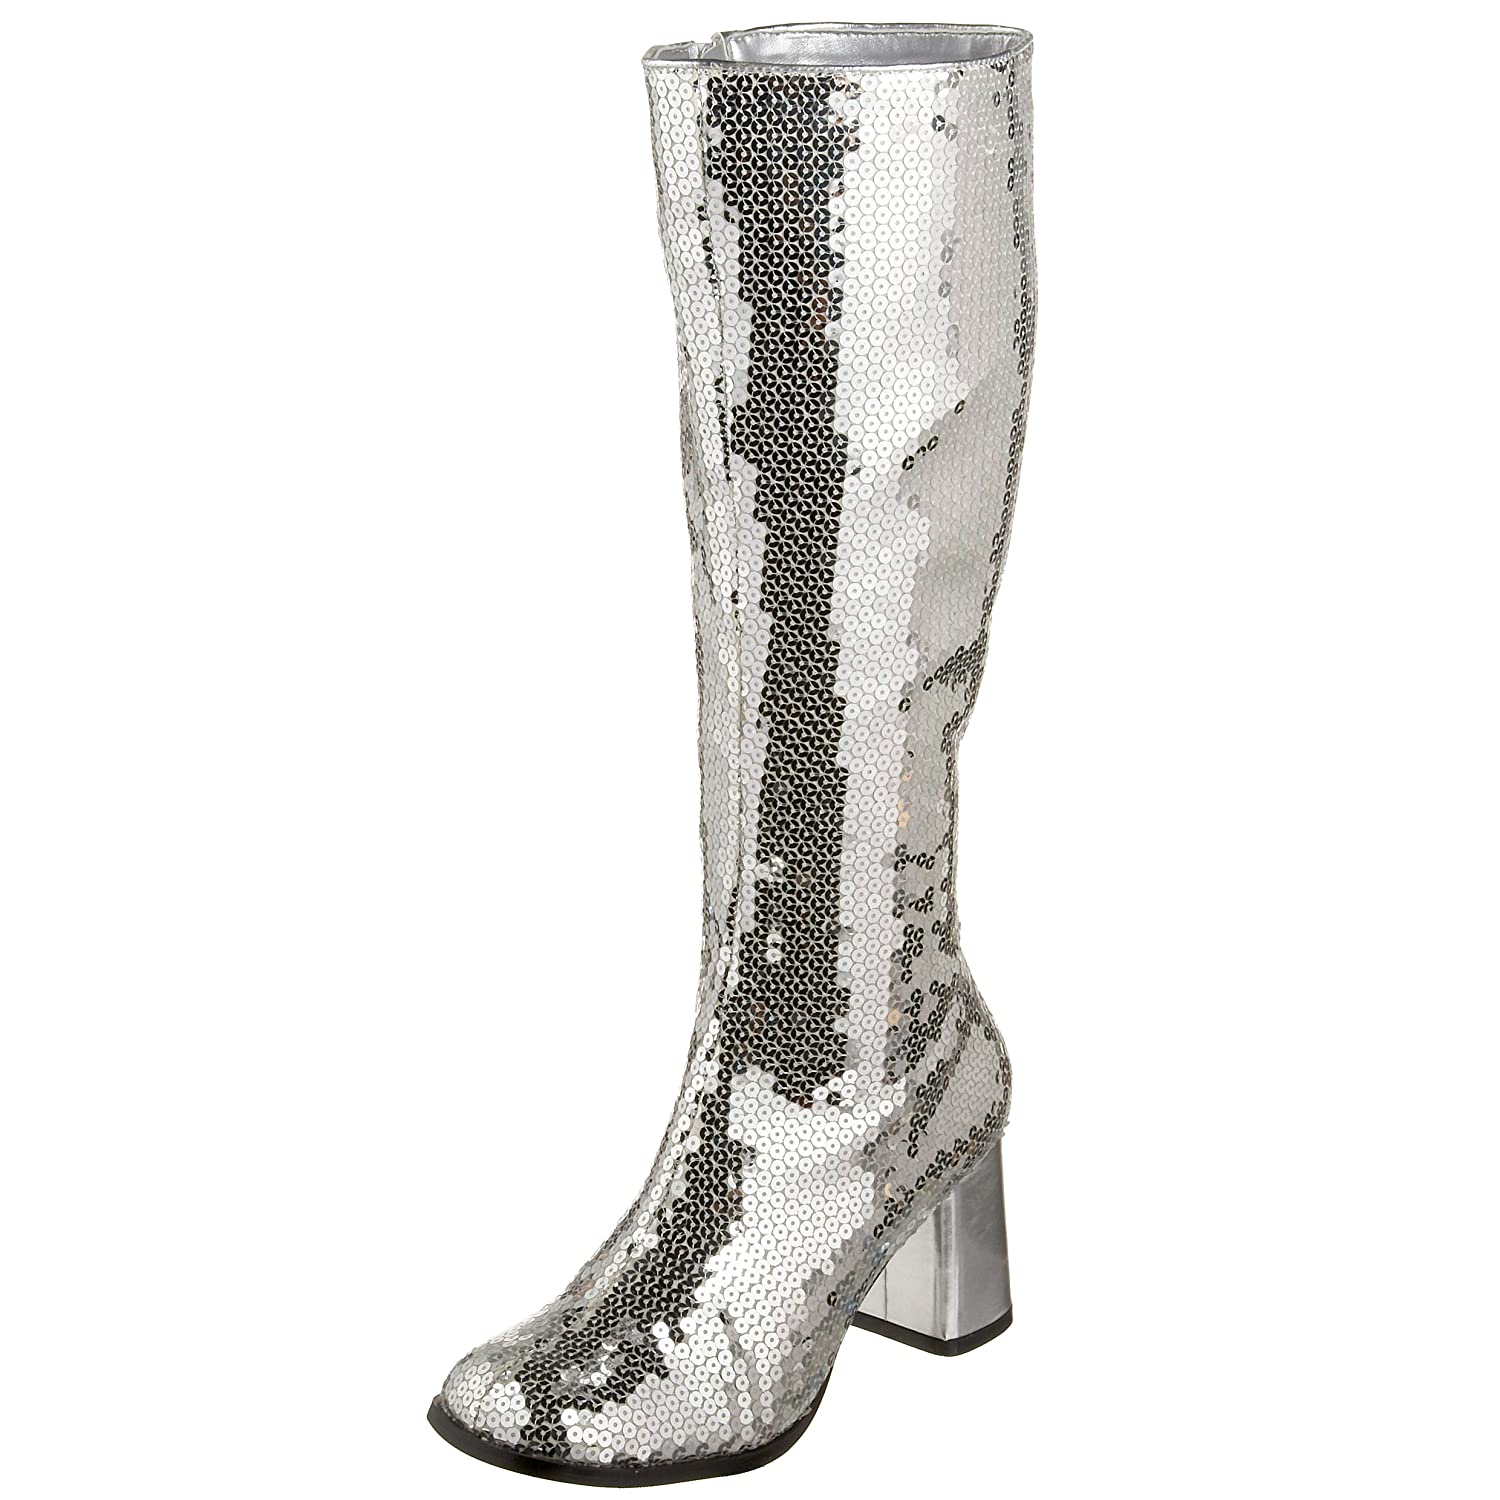 Pleaser Bordello by Women's Spectatcular-300 Sequin Gogo Boot B001TV07Y8 9 B(M) US|Silver Sequins